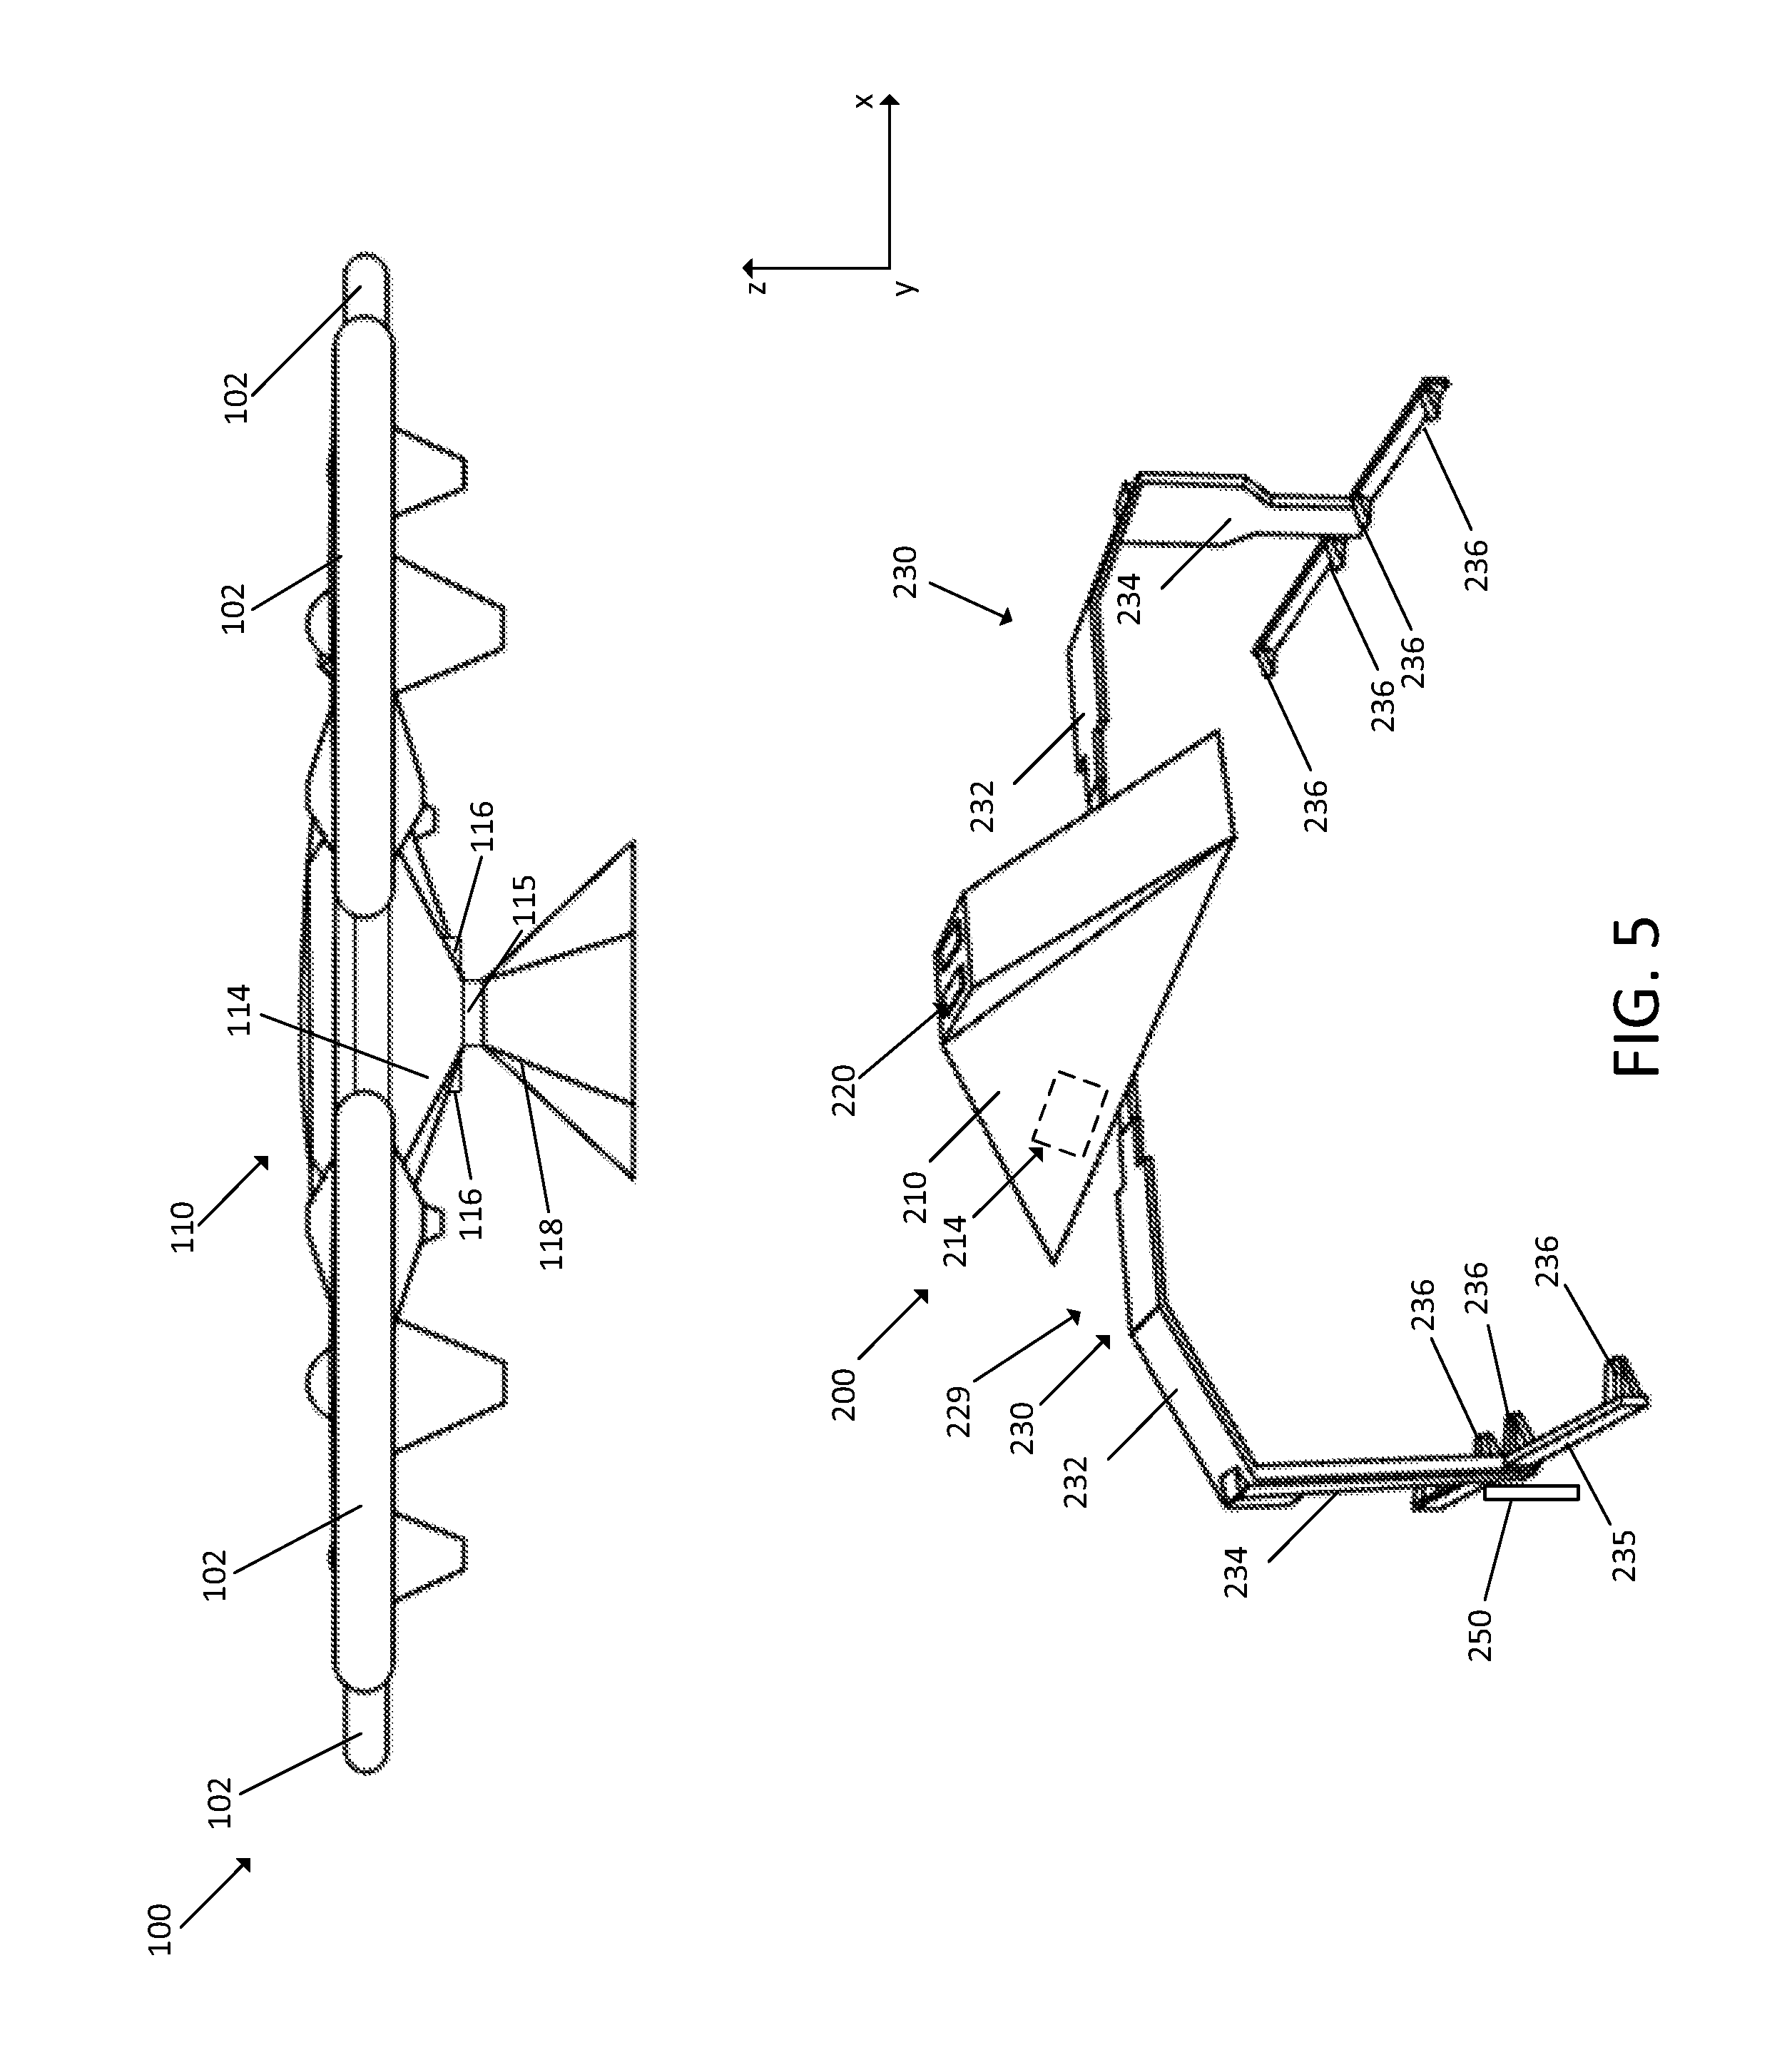 patent us 9 981 745 b2 97 Chevy Truck Wiring Diagram patent